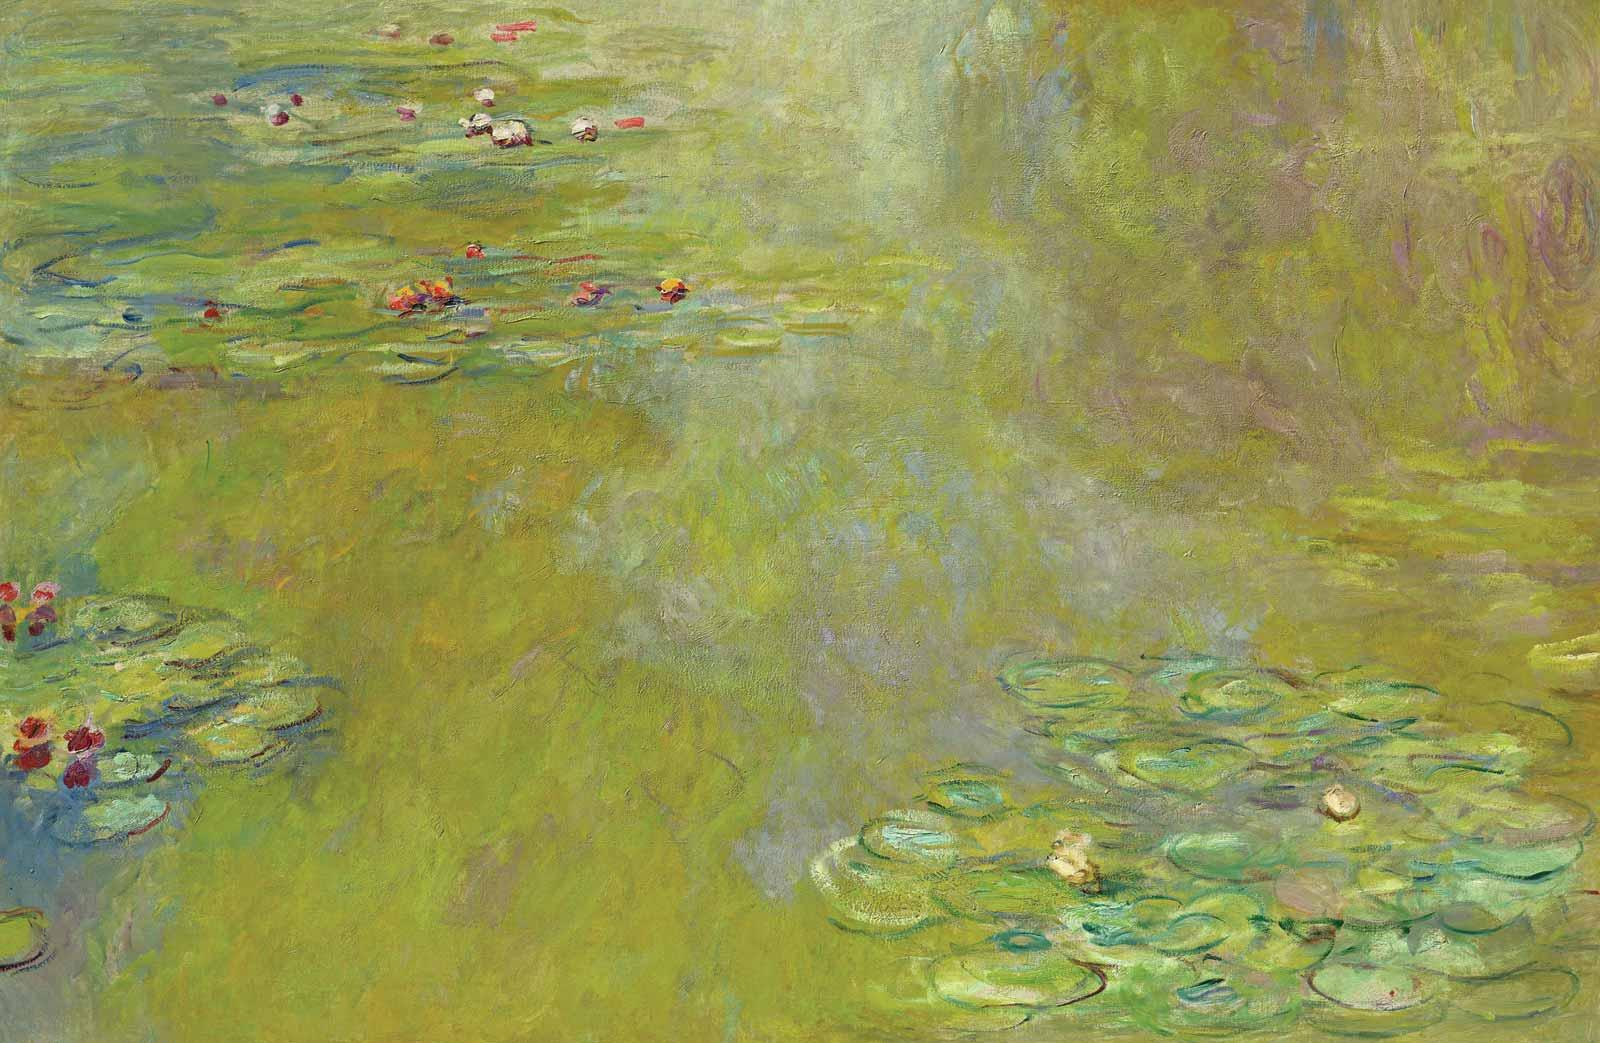 Claude Monet, The Water-Lily Pond, about 1918.